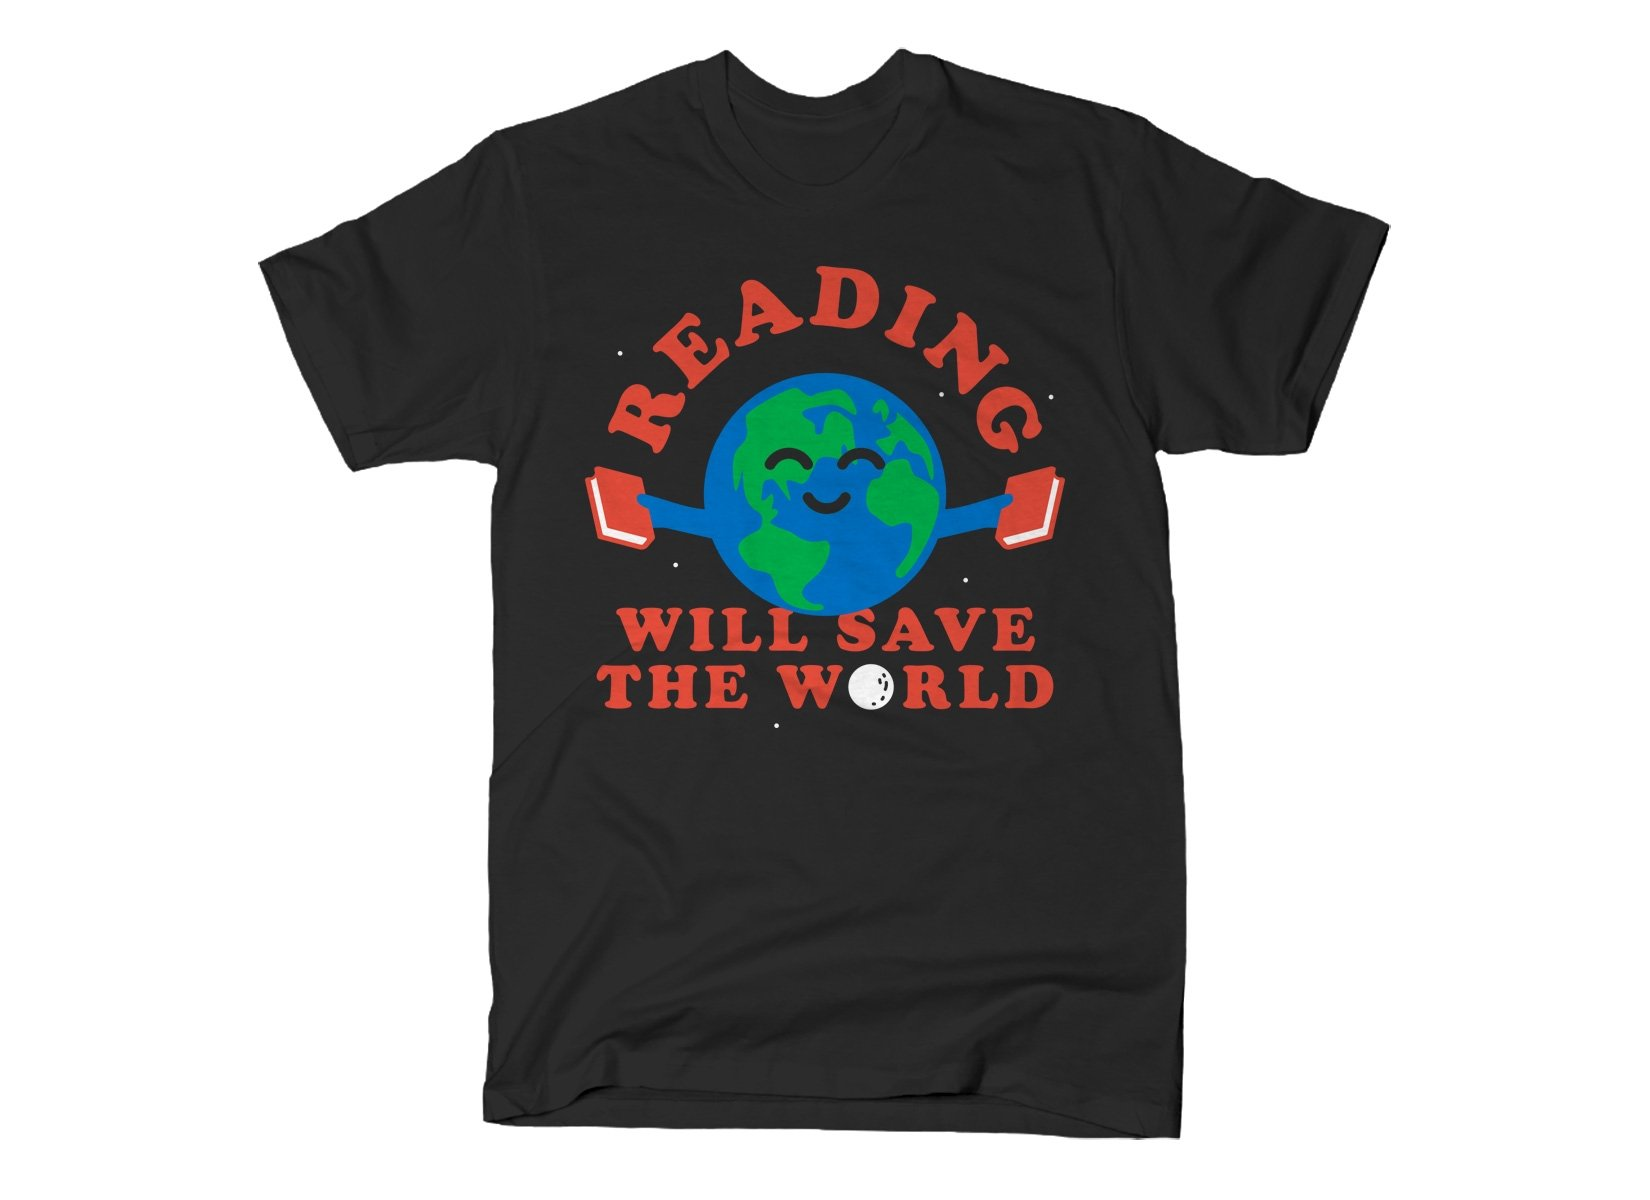 Reading Will Save The World on Mens T-Shirt